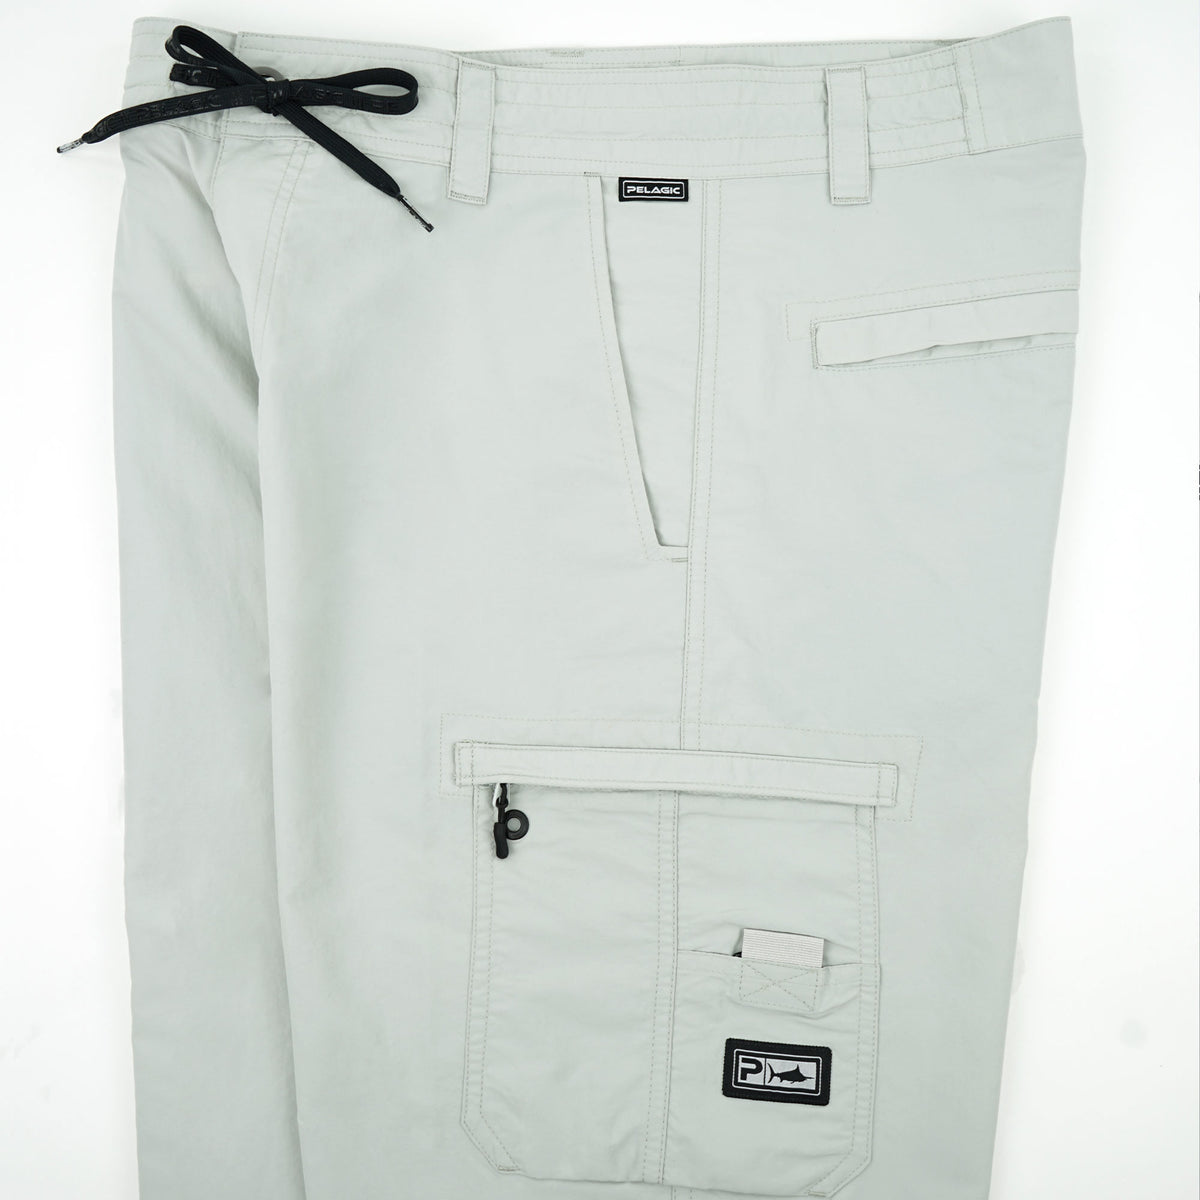 Tropical Fishing Pant Big Image - 6